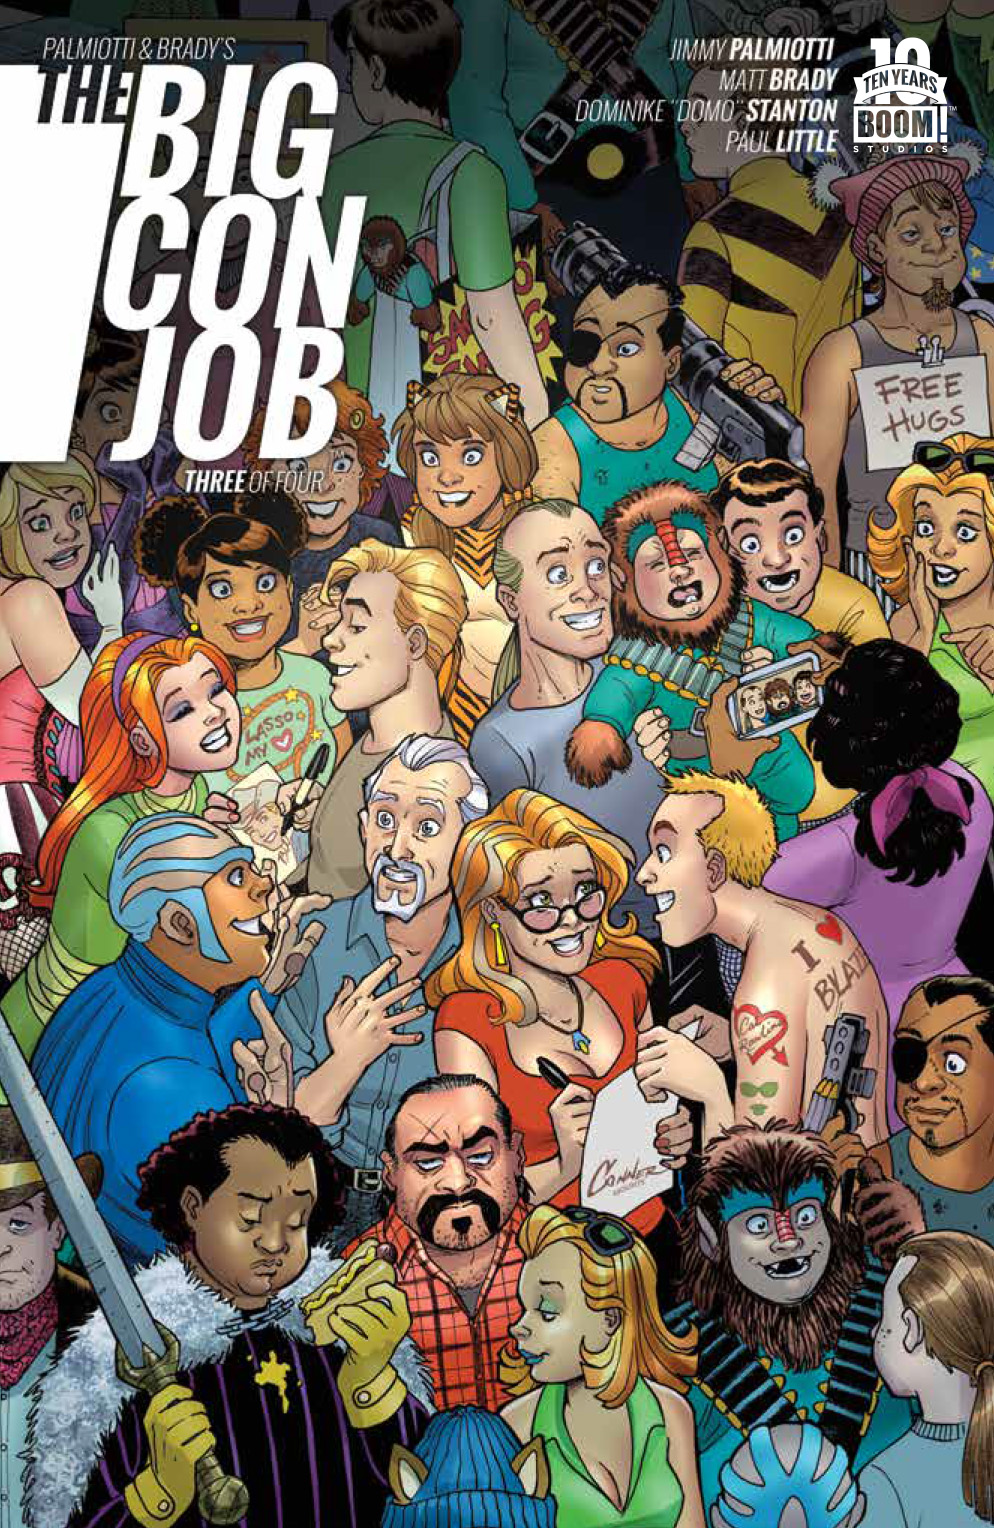 Palmiotti & Brady's The Big Con Job #3 Preview